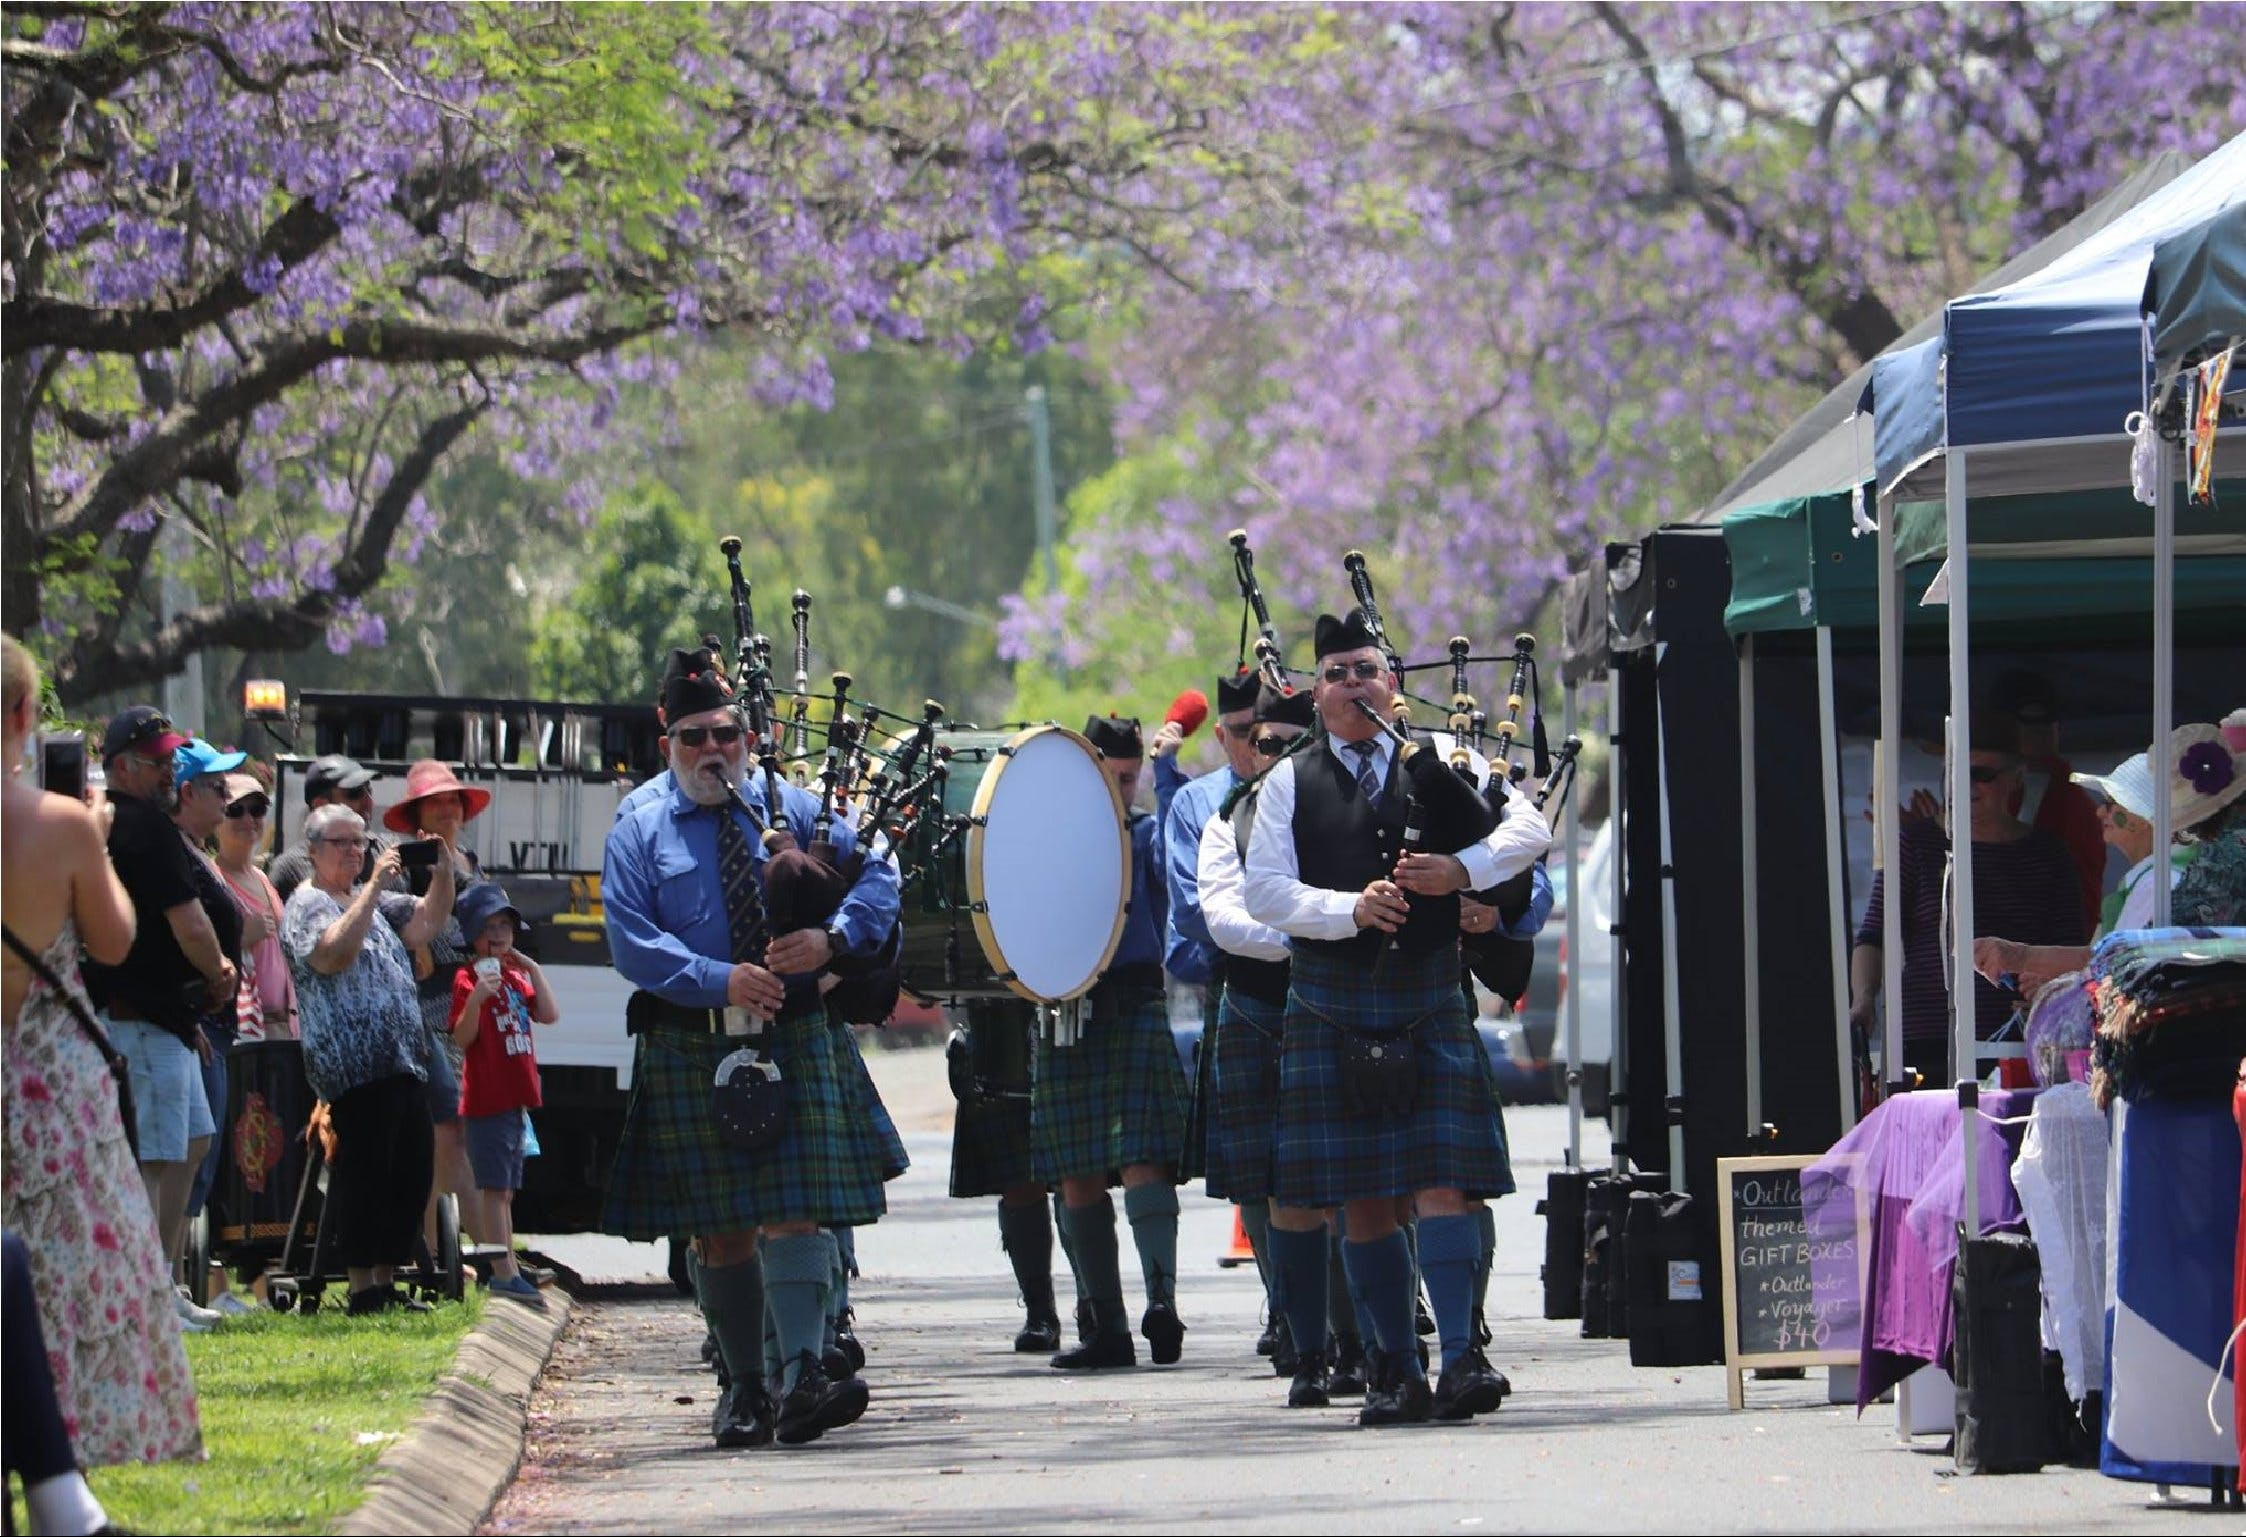 Celtic Festival of Queensland Logo and Images